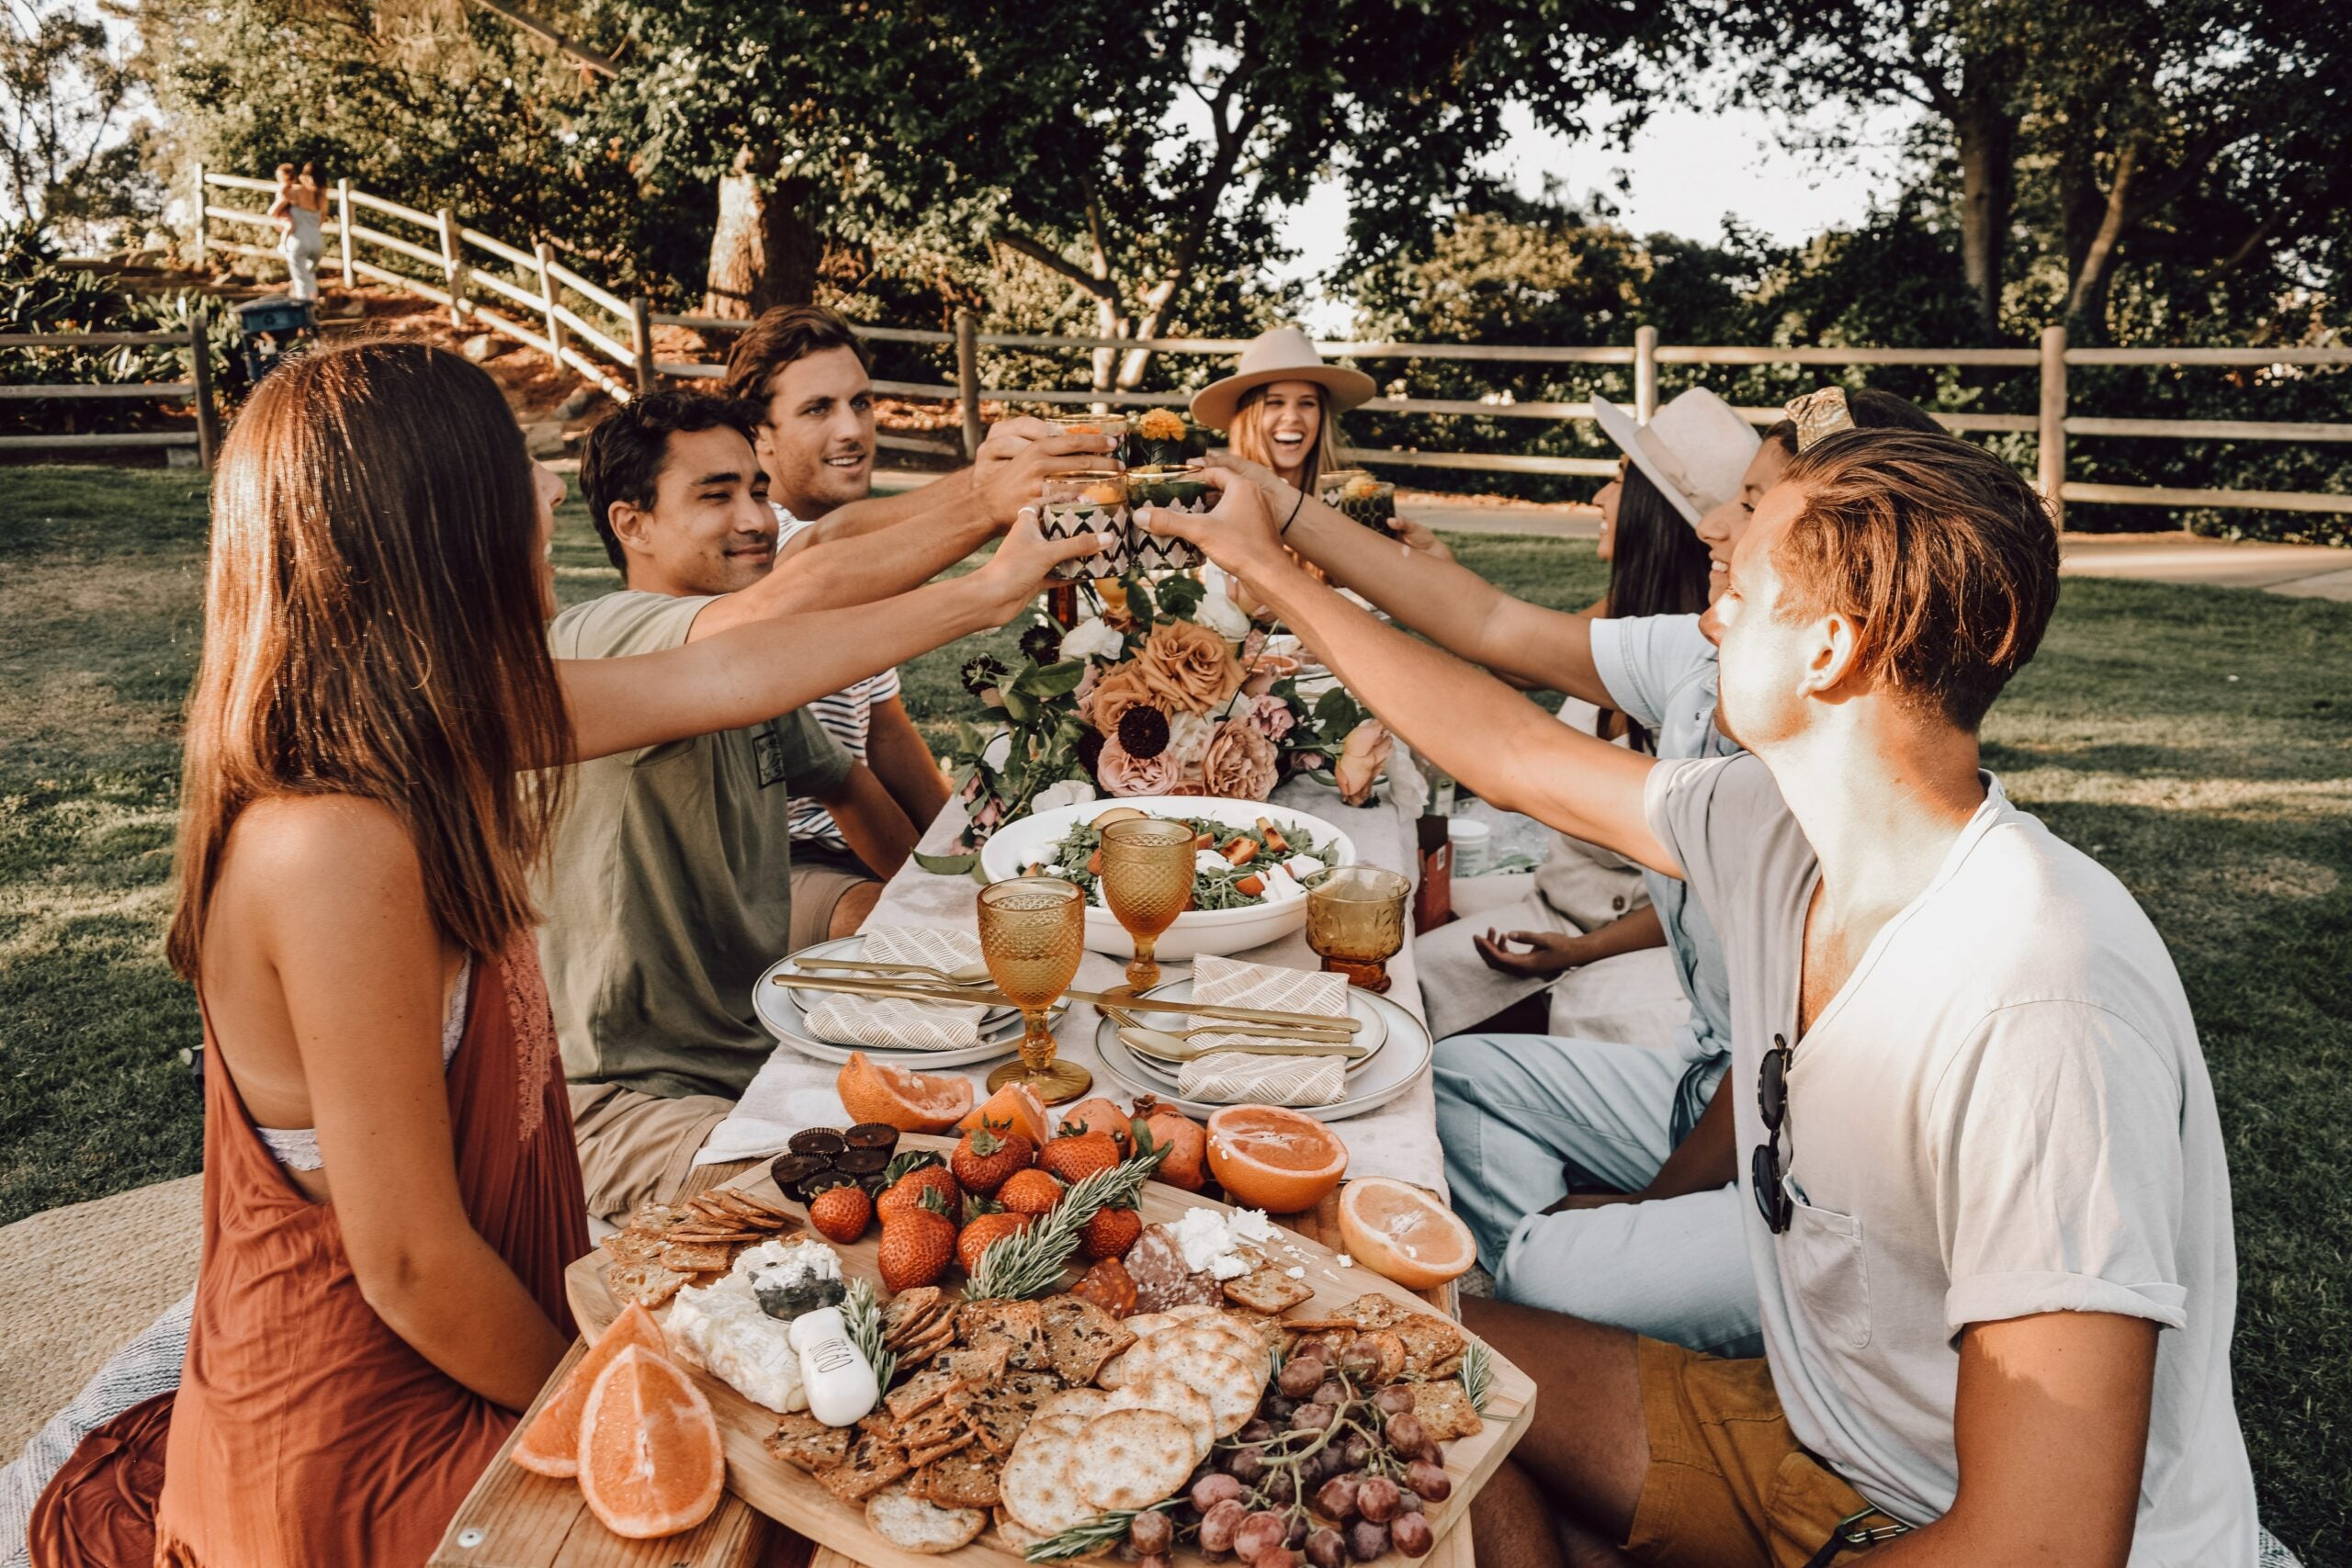 friends-eating-outdoors-without-masks